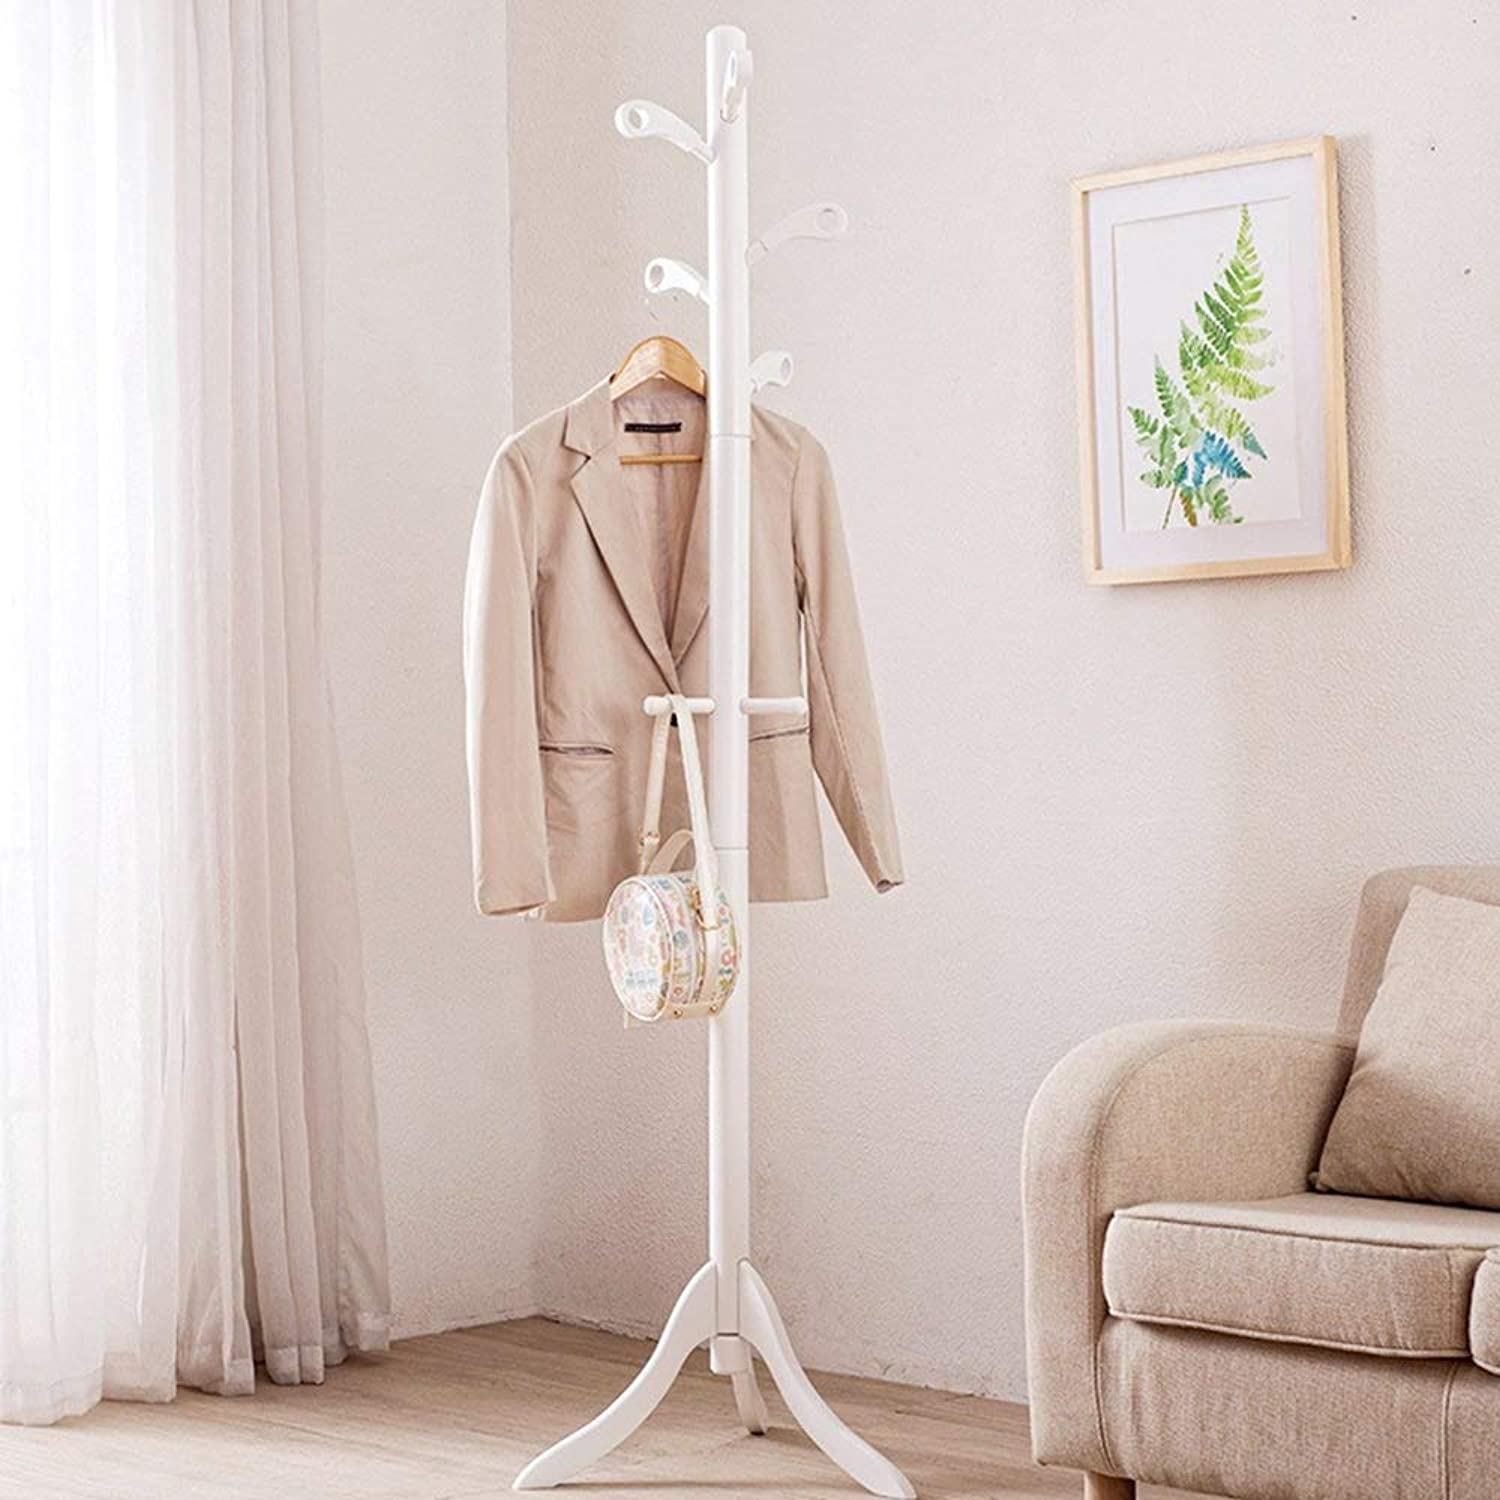 Coat Rack Coat and Hat Rack European Style Multifunction Beech Simple Stand Storage Wall Hanger Wood Haiming (color   White)